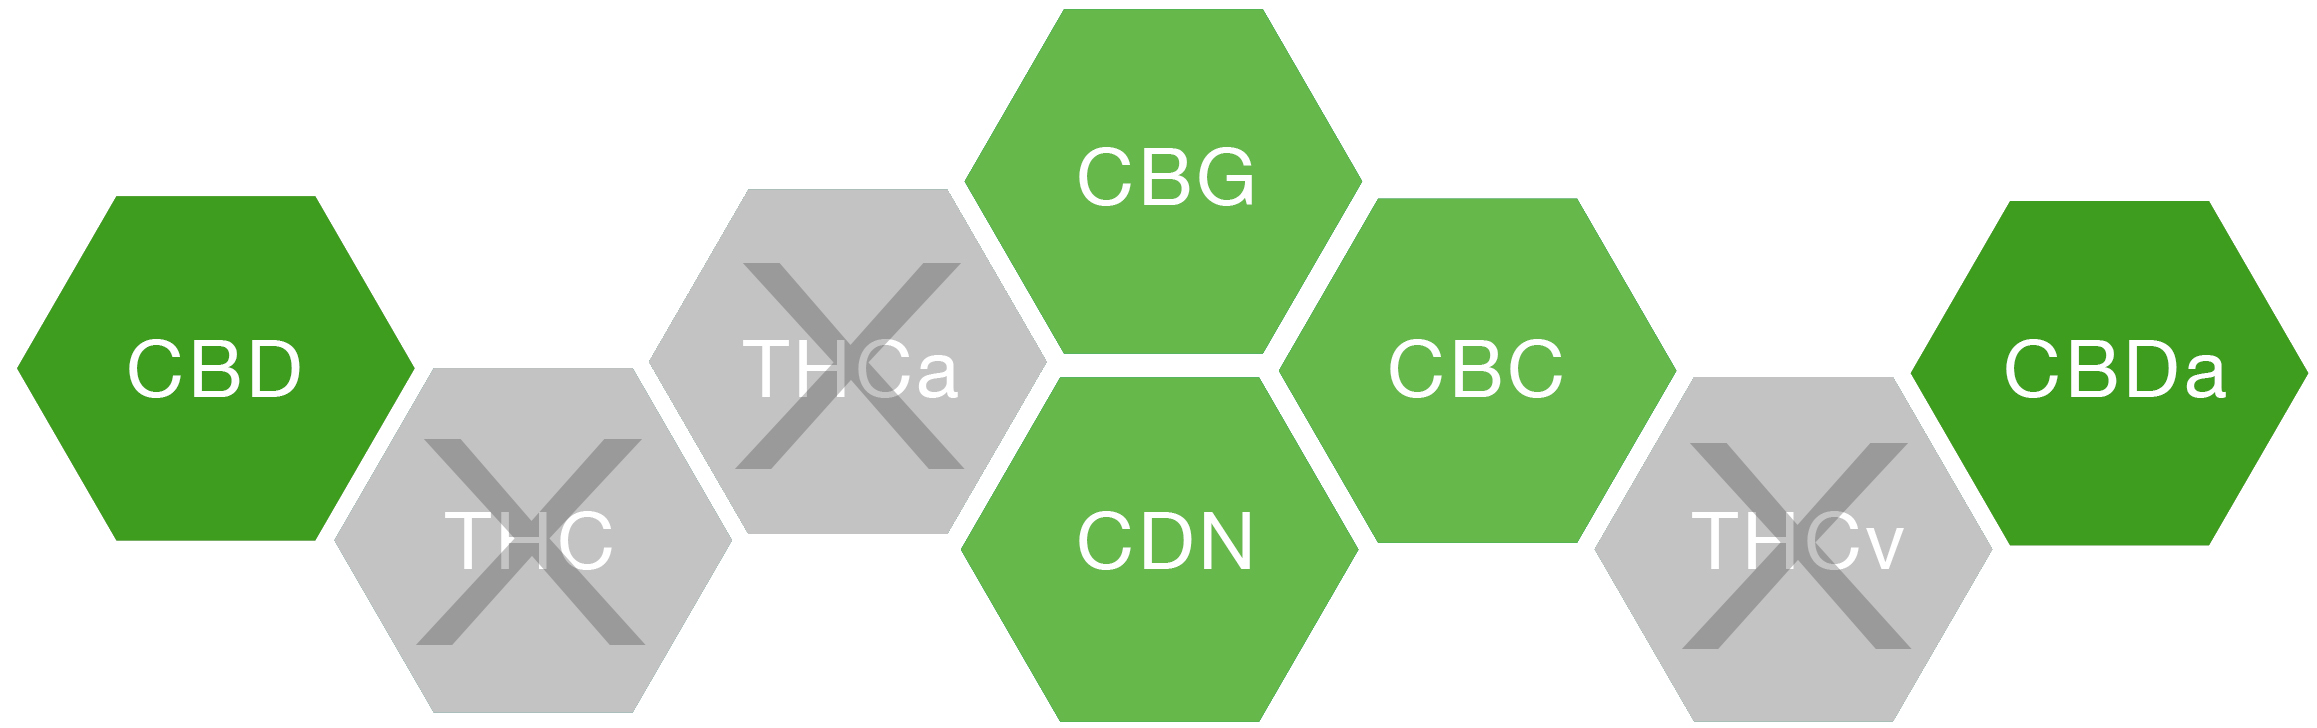 cbd broad spectrum diagram